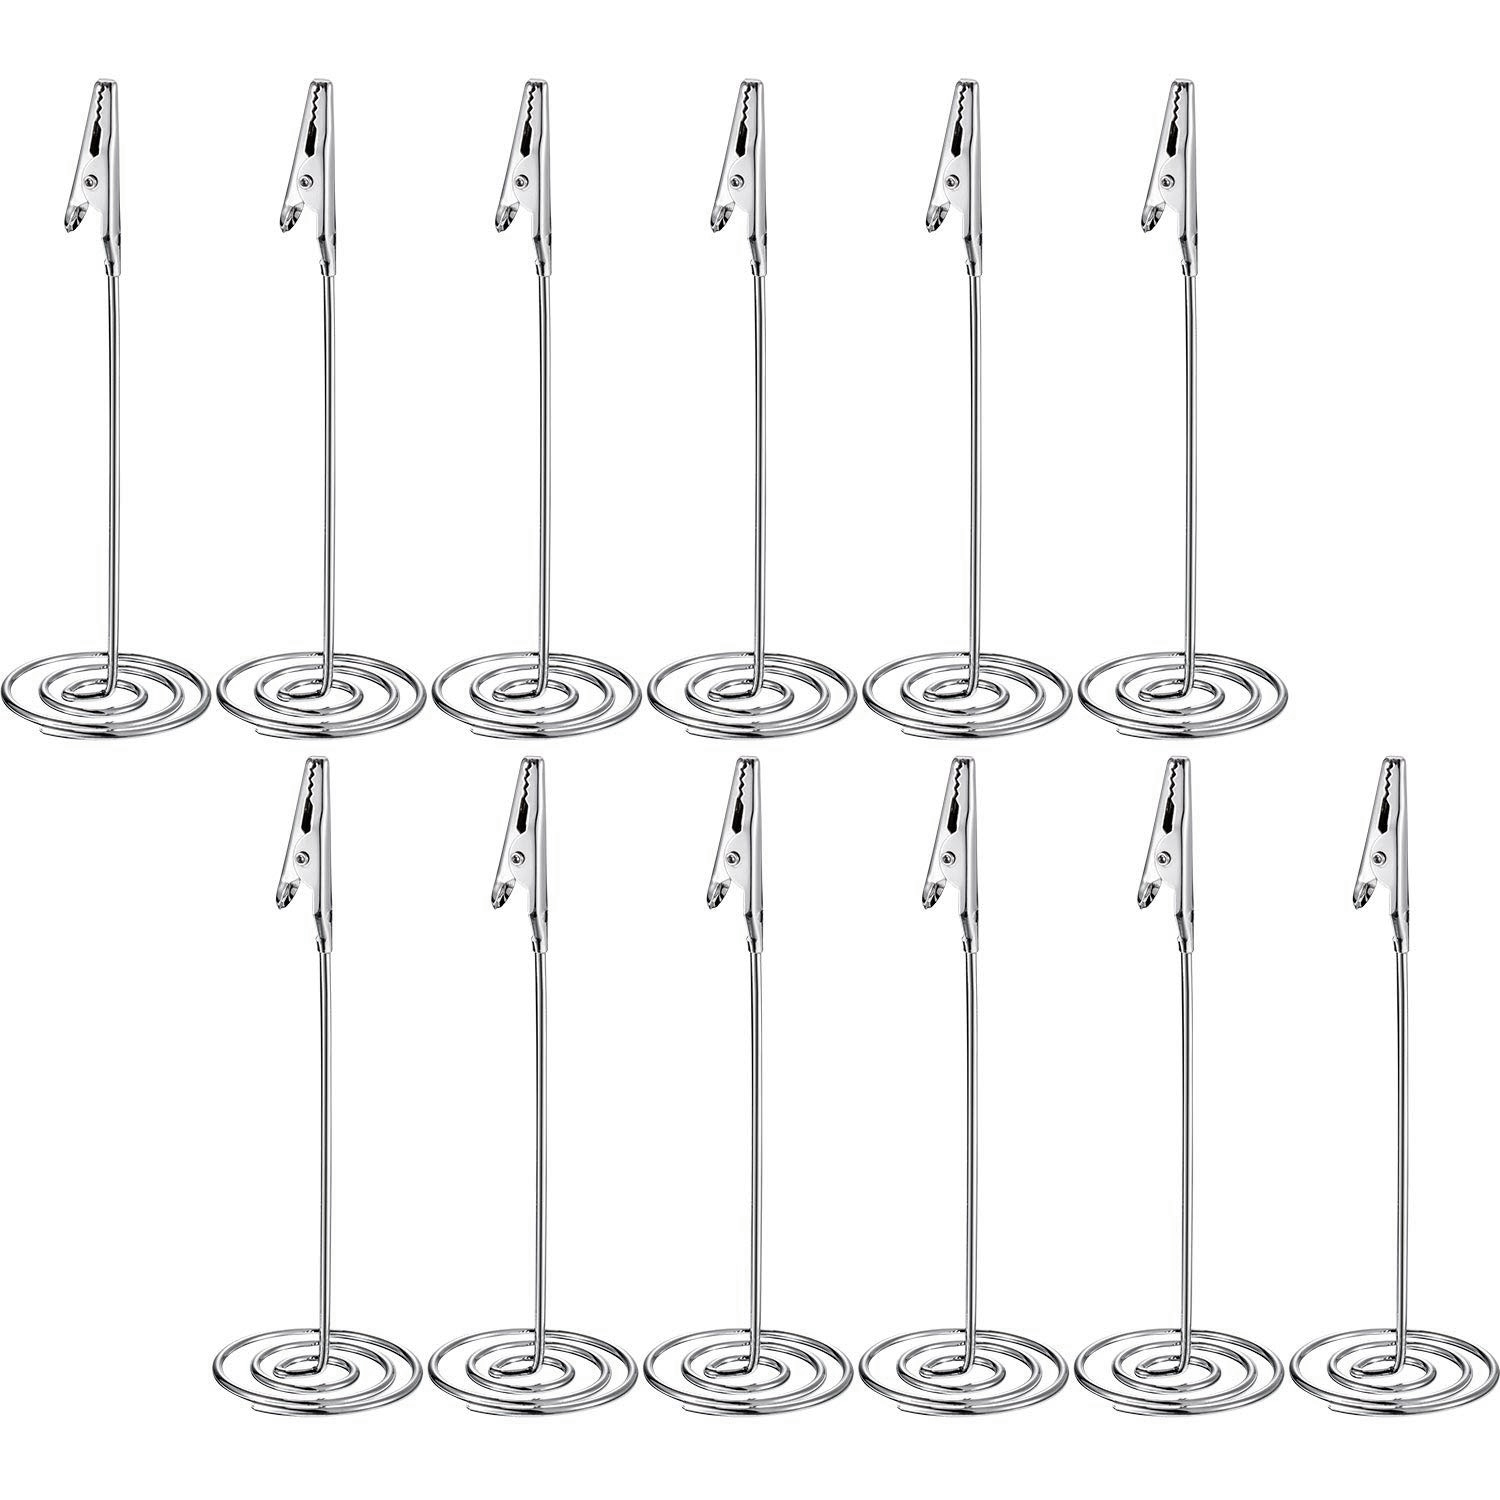 12 Packs Table Number Card Holders With Alligator Clip Photo Memo Holder Clips For Wedding Party Favor (Silvery)